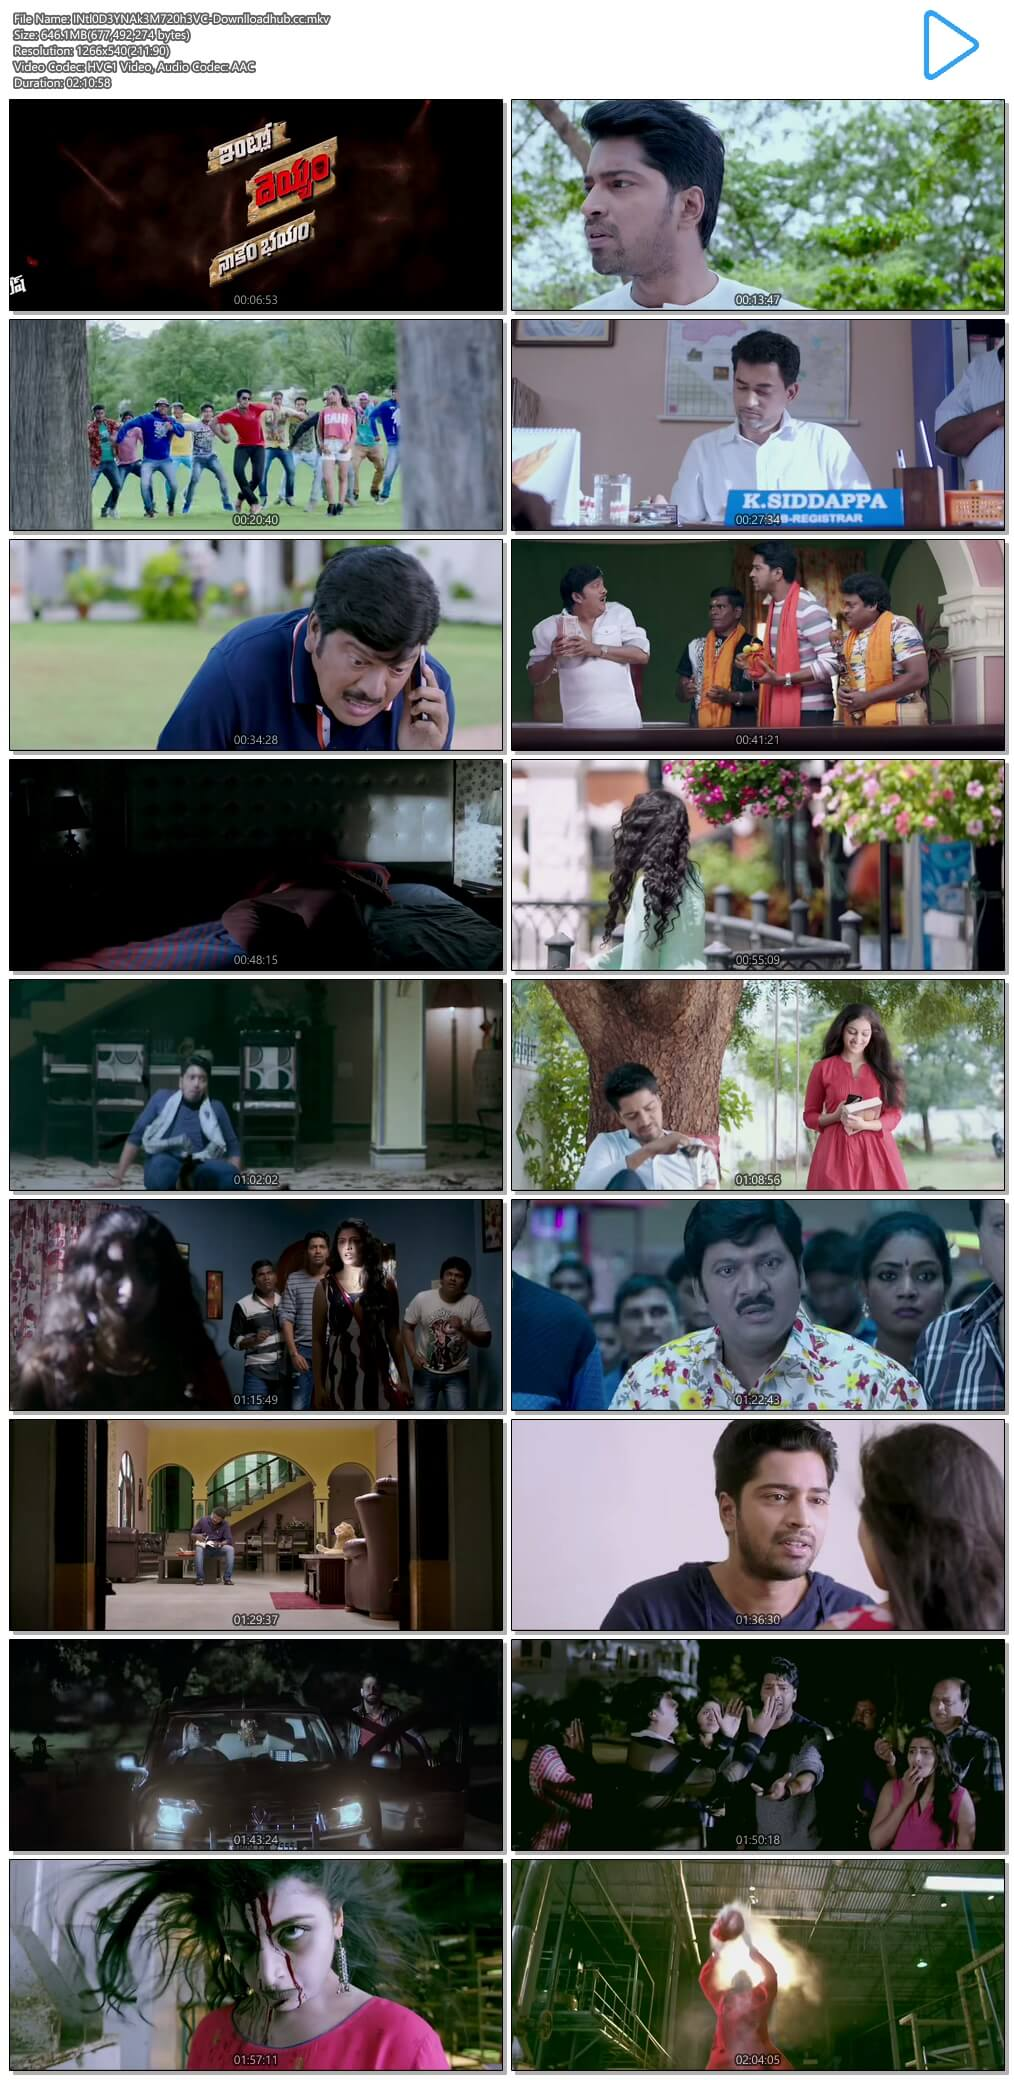 Intlo Dayyam Nakemi Bhayam 2016 UNCUT Hindi Dual Audio 720p HEVC HDRip Free Download